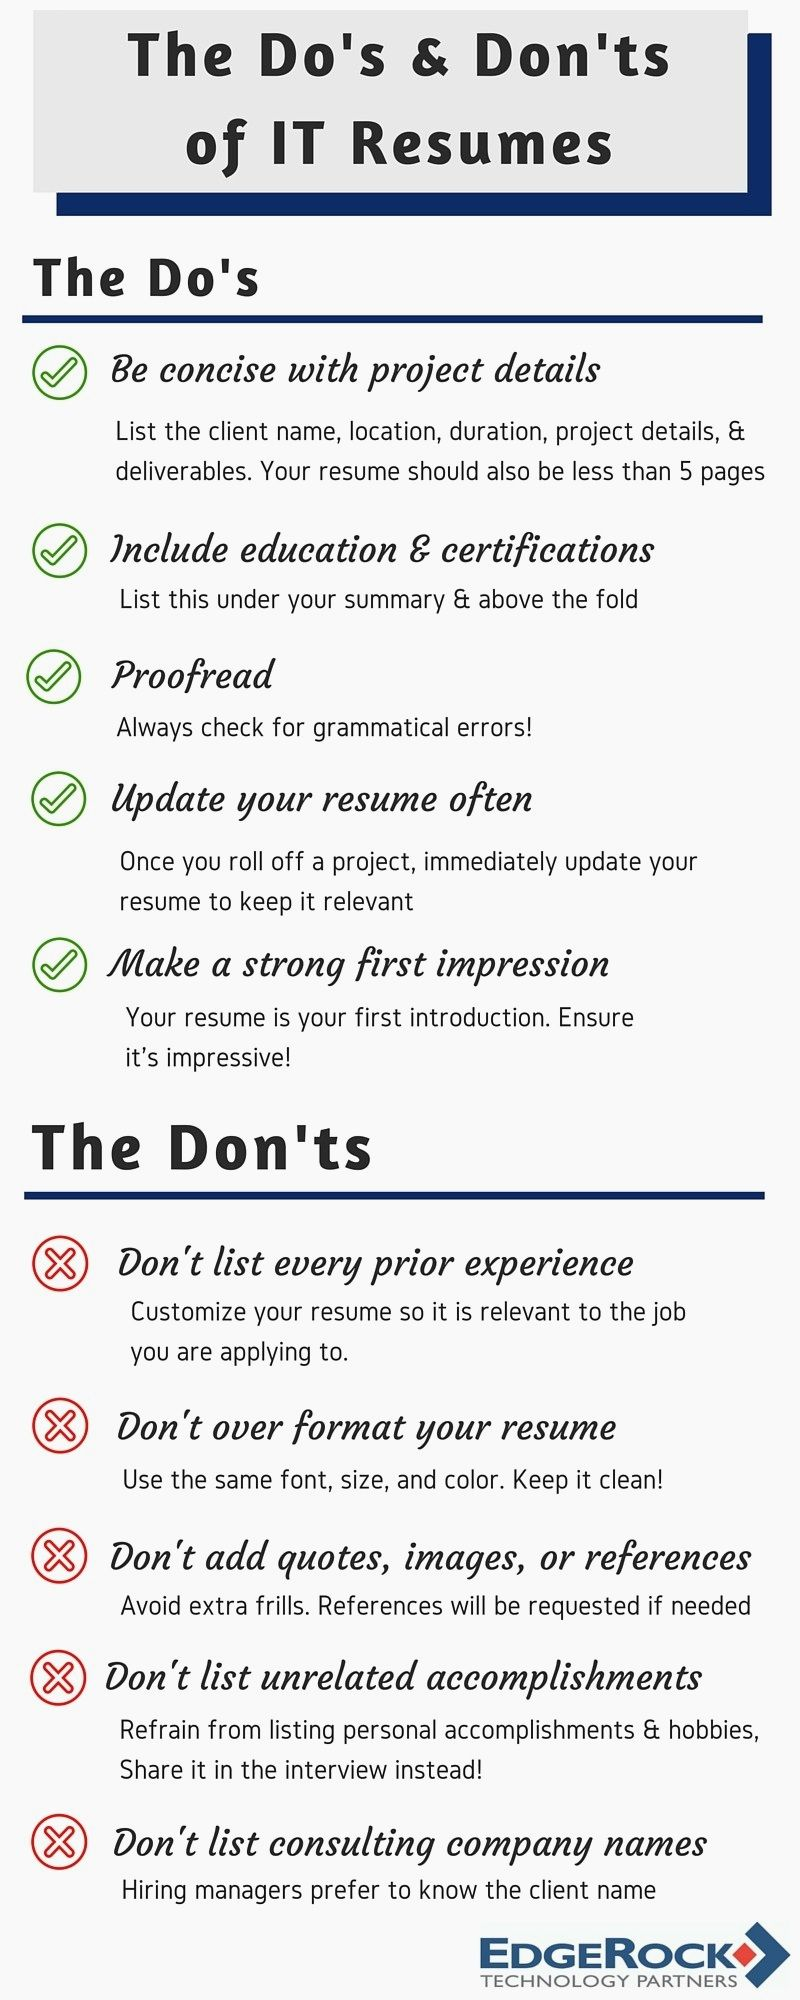 Resume Format Dos And Donts (With images) Resume format